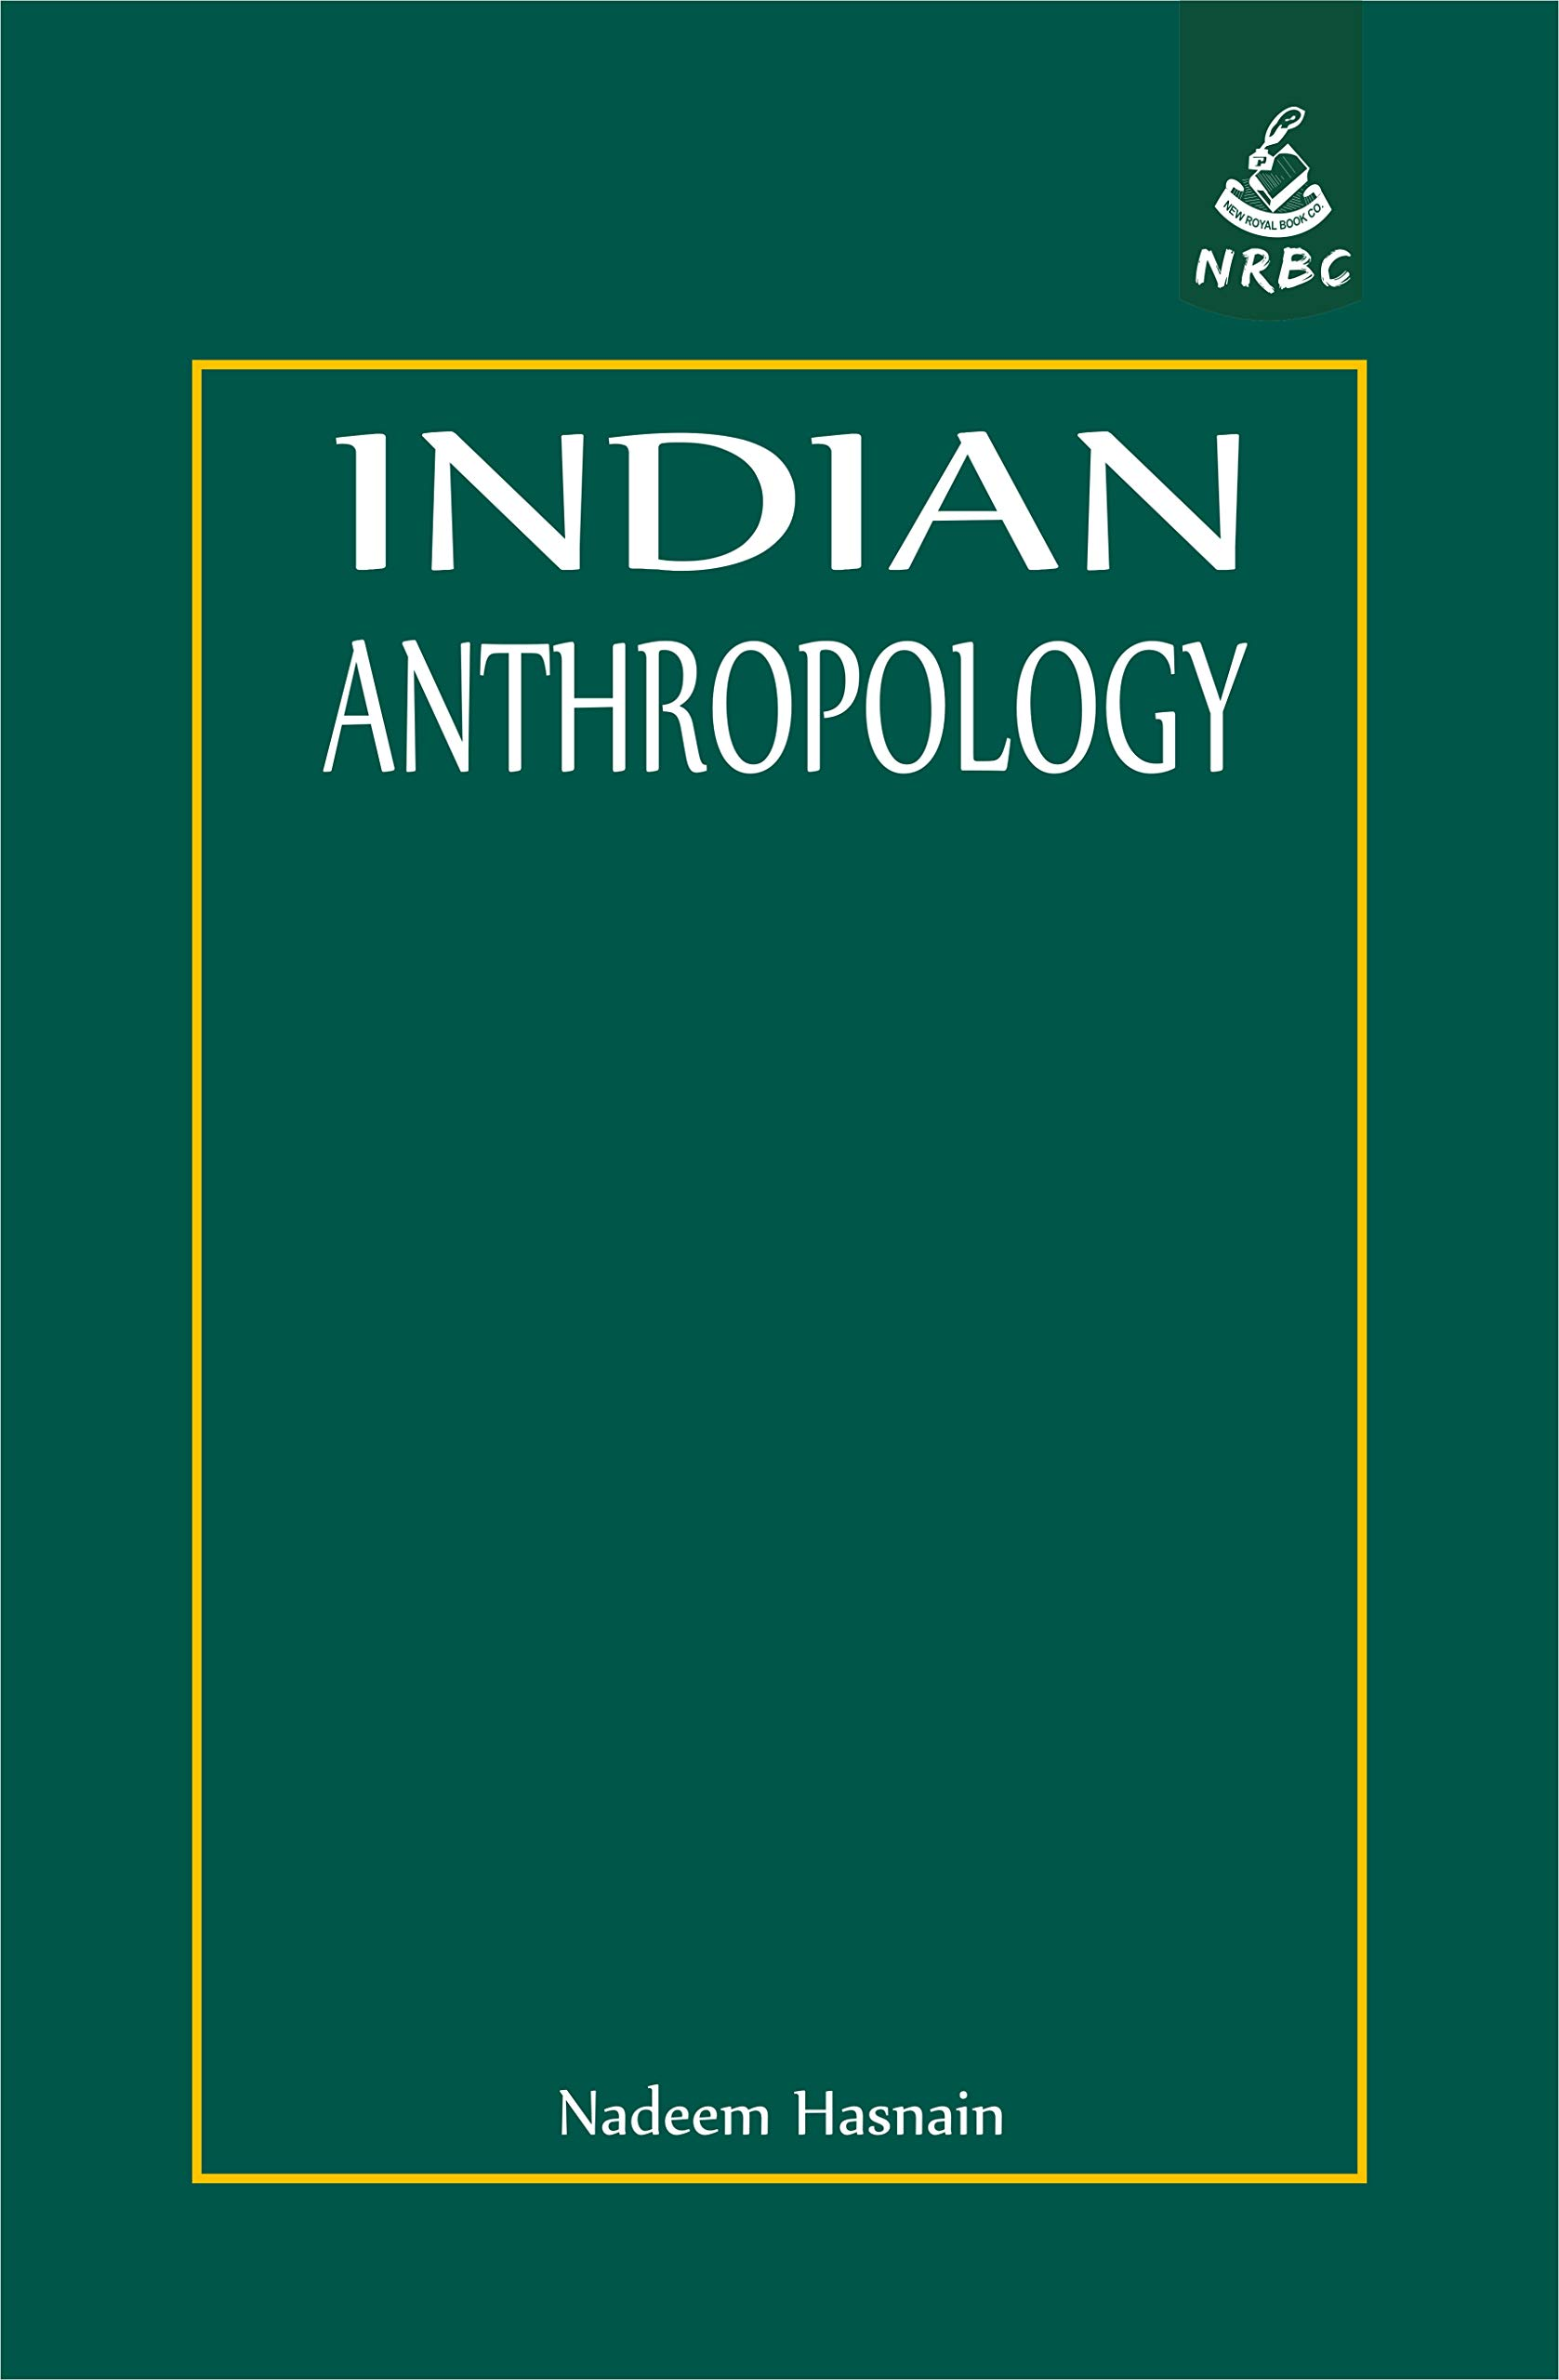 Indian anthropology nadeem hasnain pdf